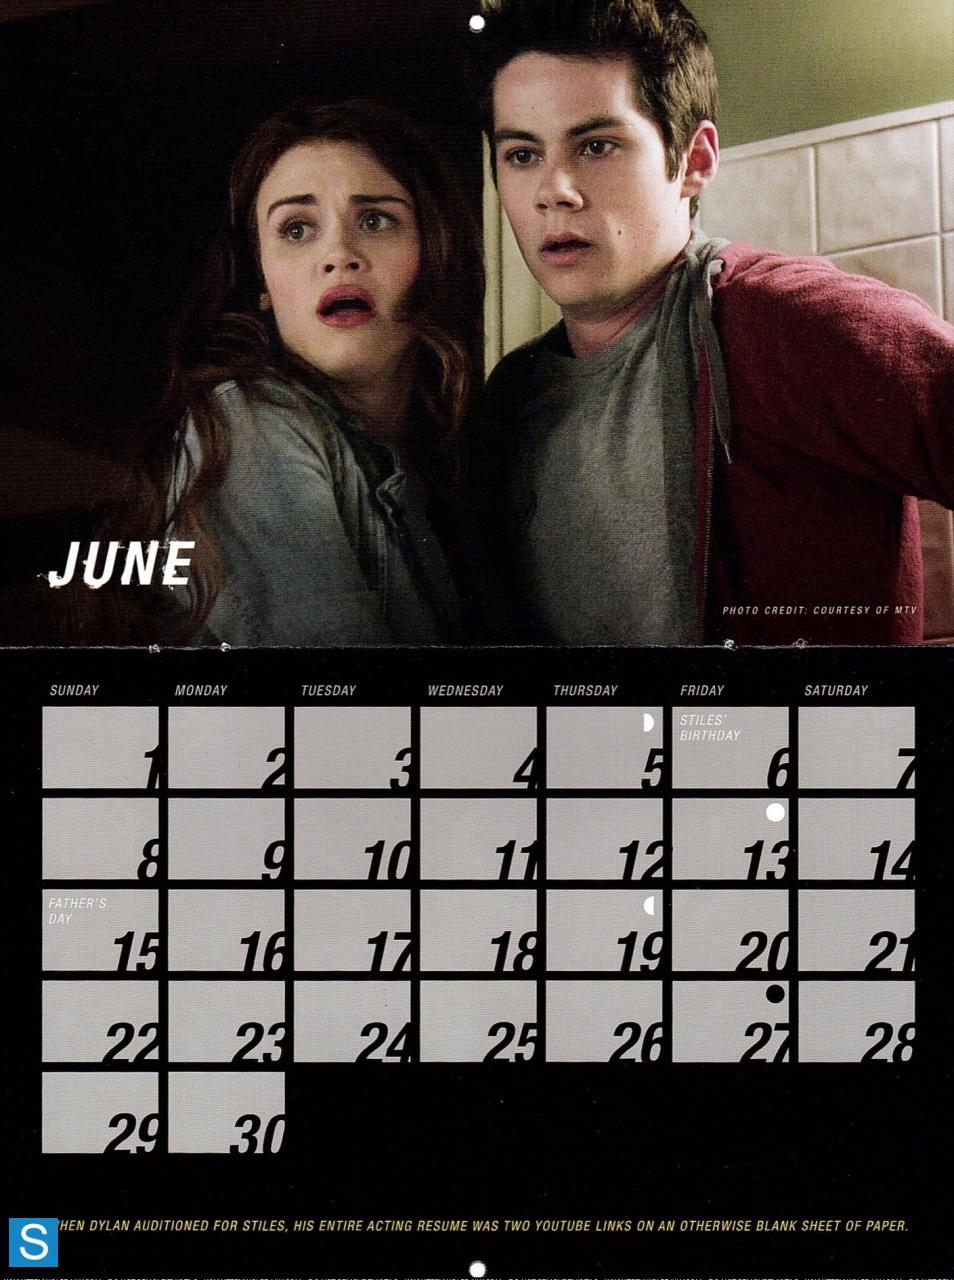 Teen wolf - Season 3 - 2014 Calendar Promotional Fotos